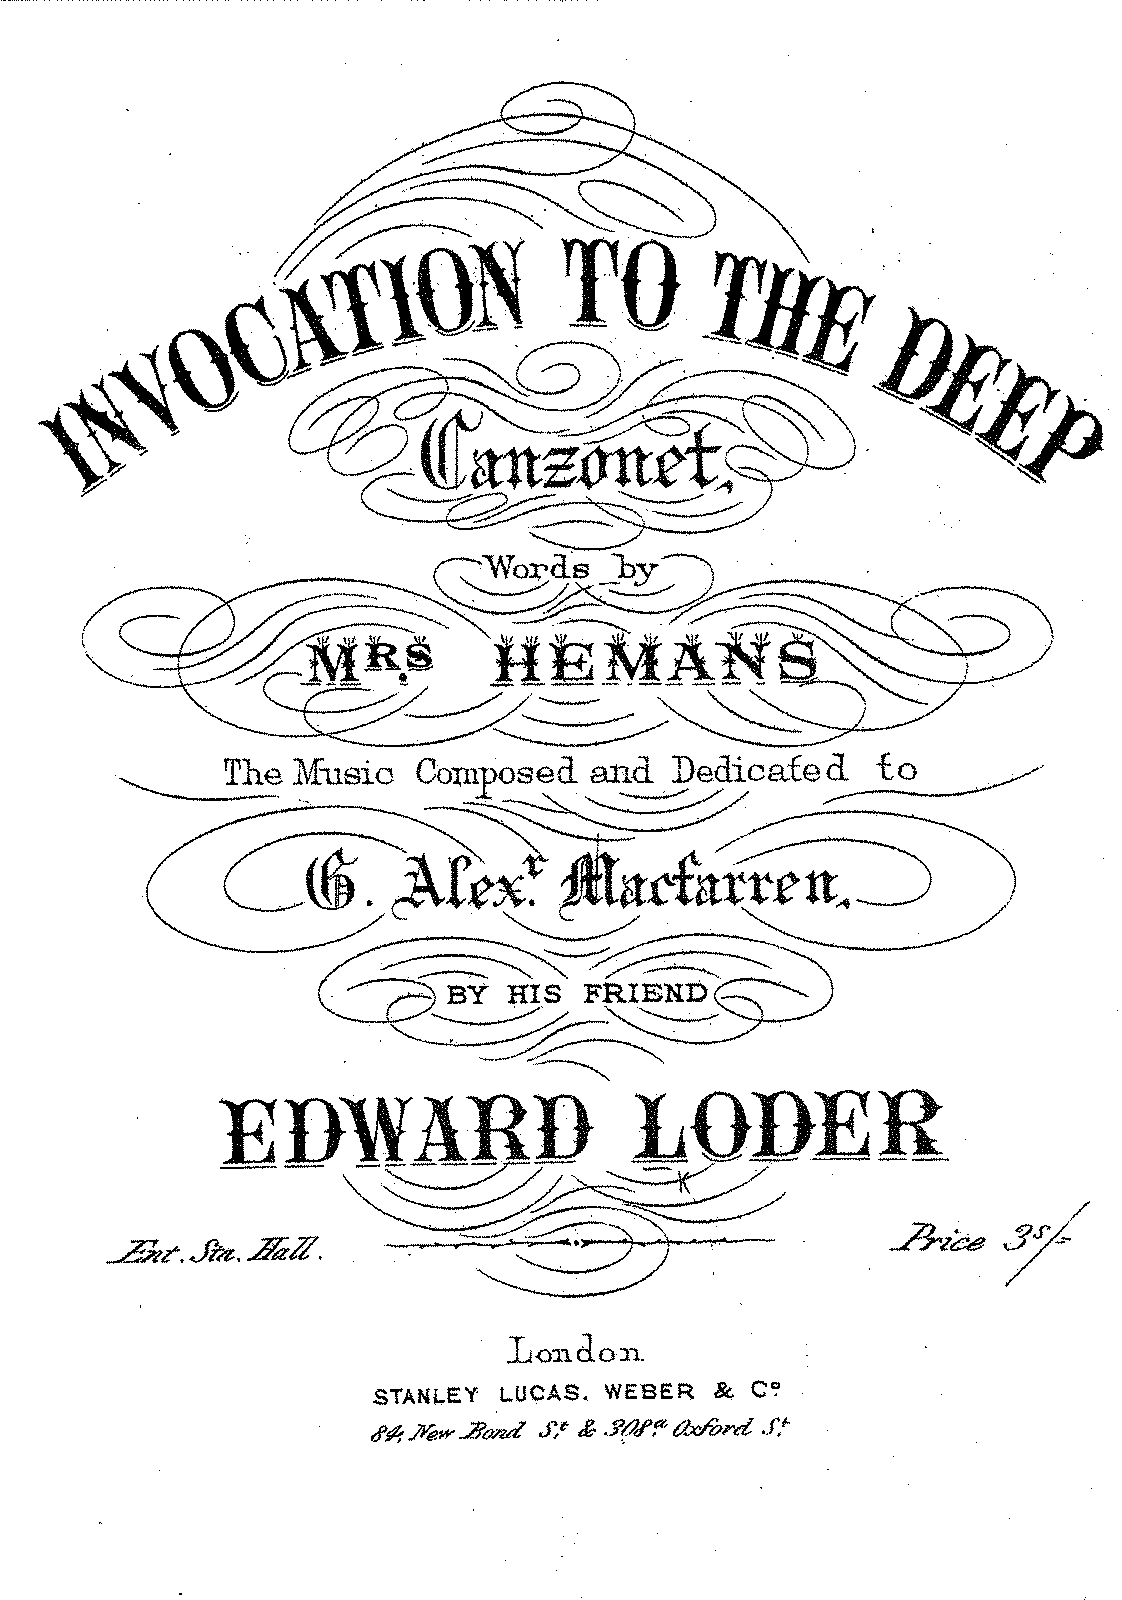 PMLP488745-Invocation to the Deep.pdf